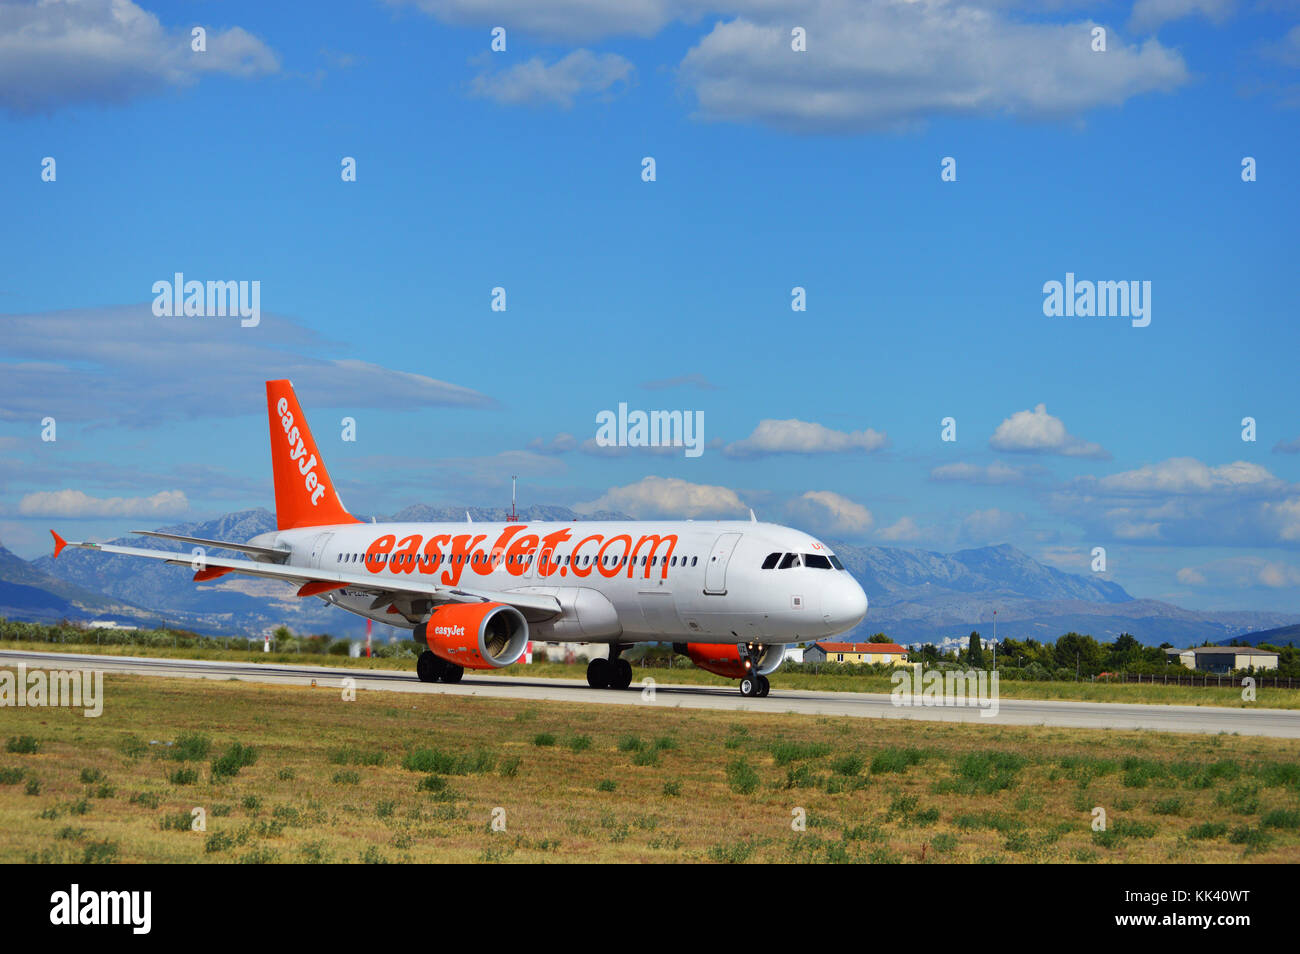 G-EZUZ  easyJet Airbus A320-214 taxiing the LDSP RWY 23 preparing for takeoff, Kaštela Croatia Stock Photo